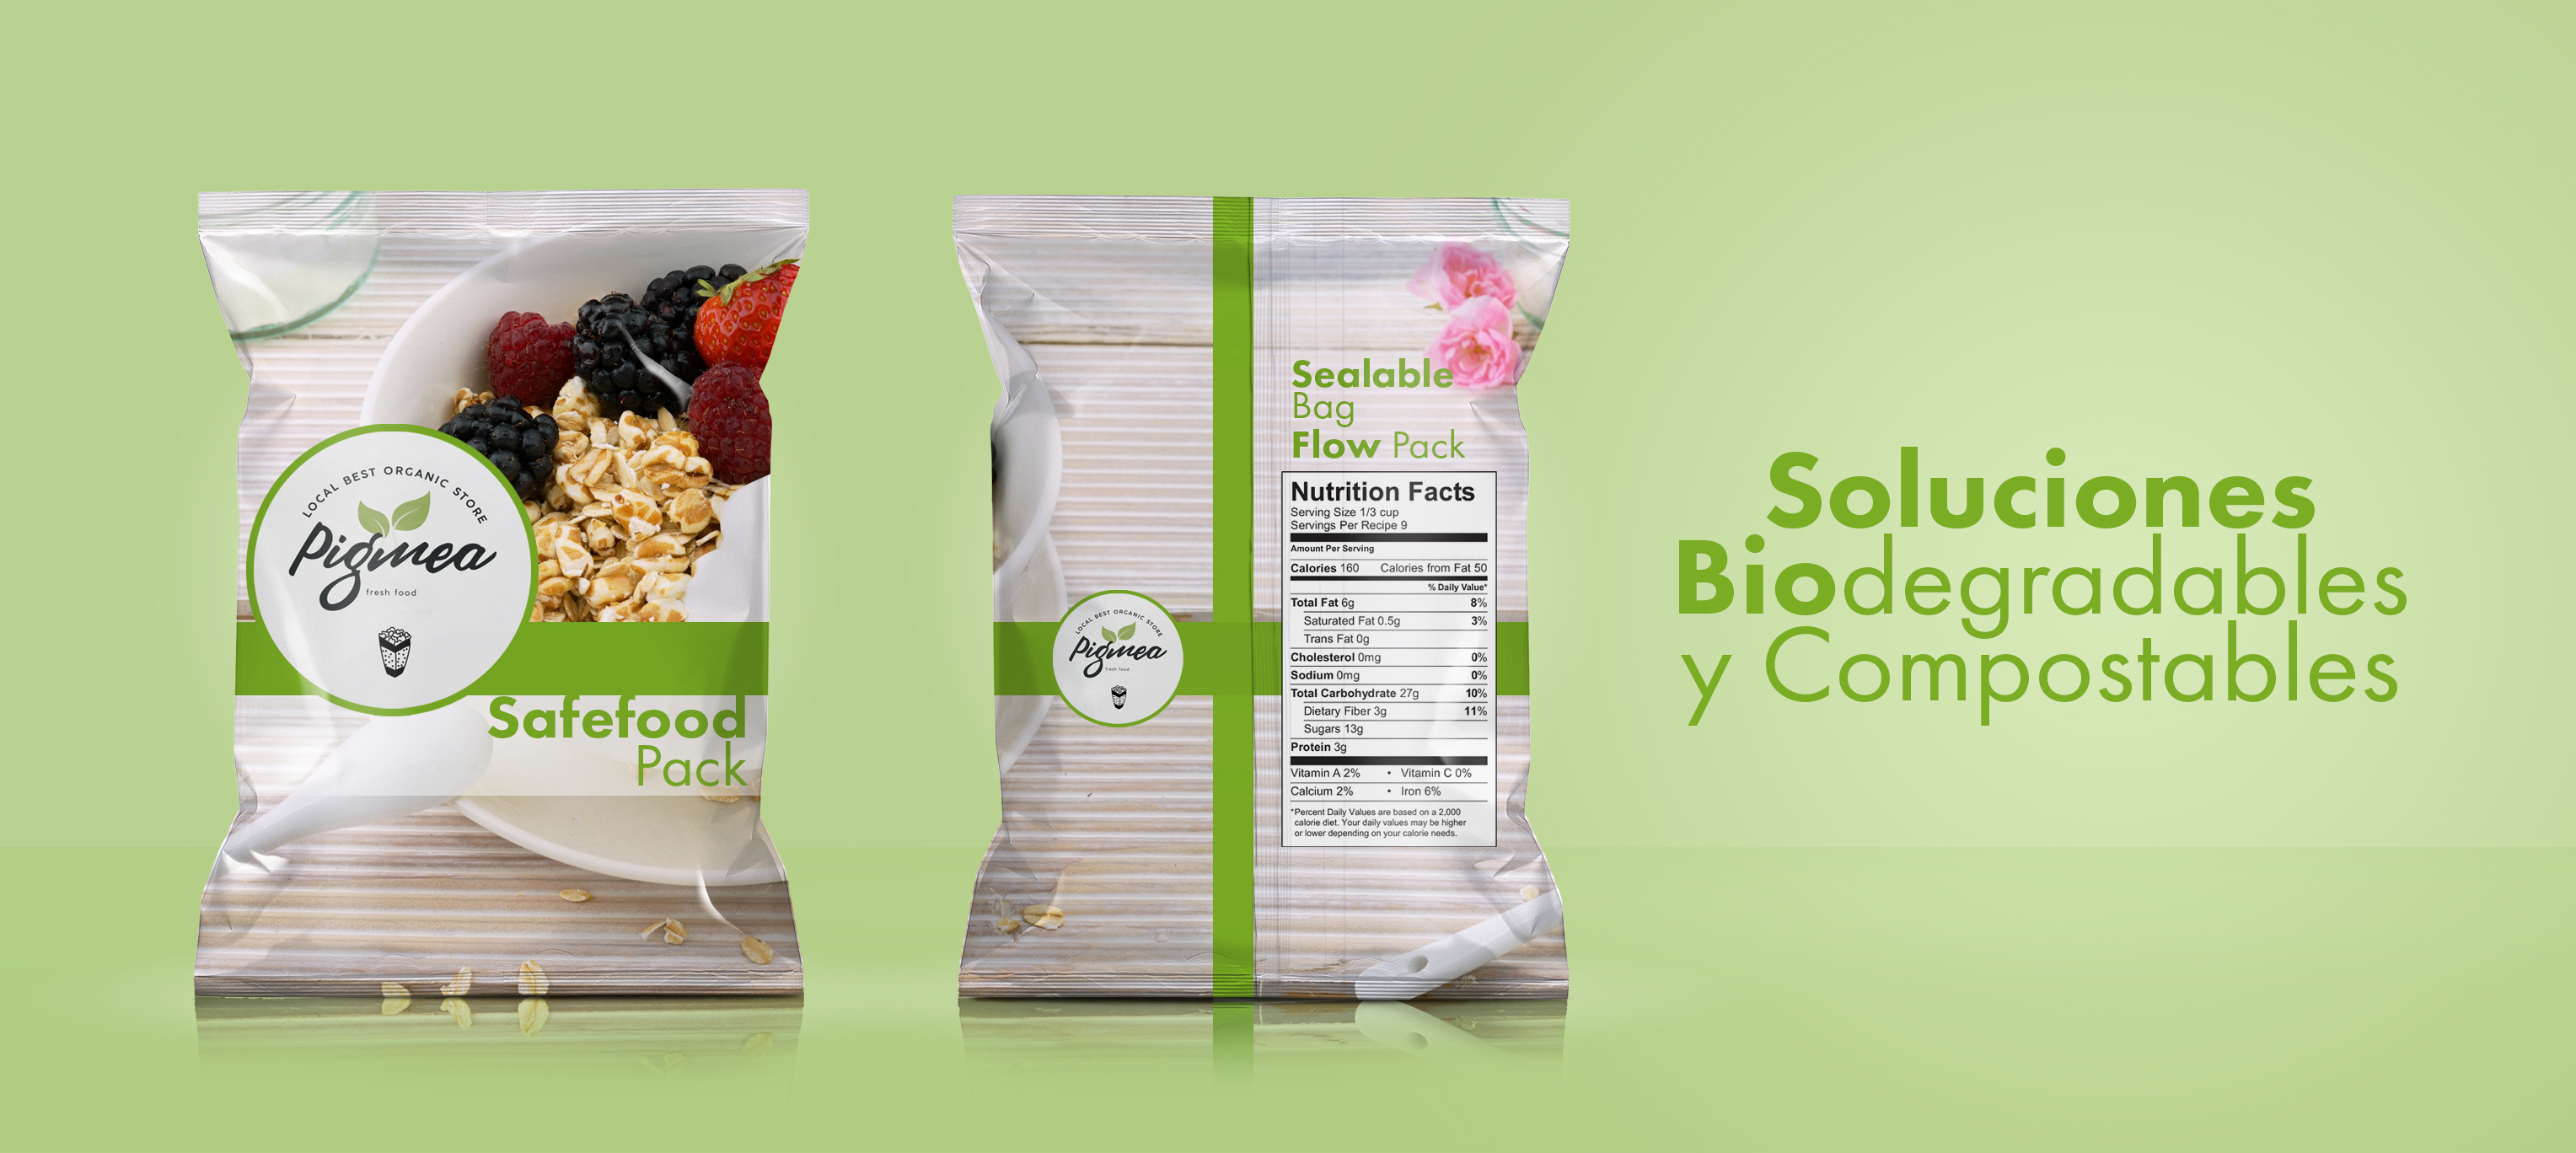 FILM BIODEGRADABLE Y COMPOSTABLE